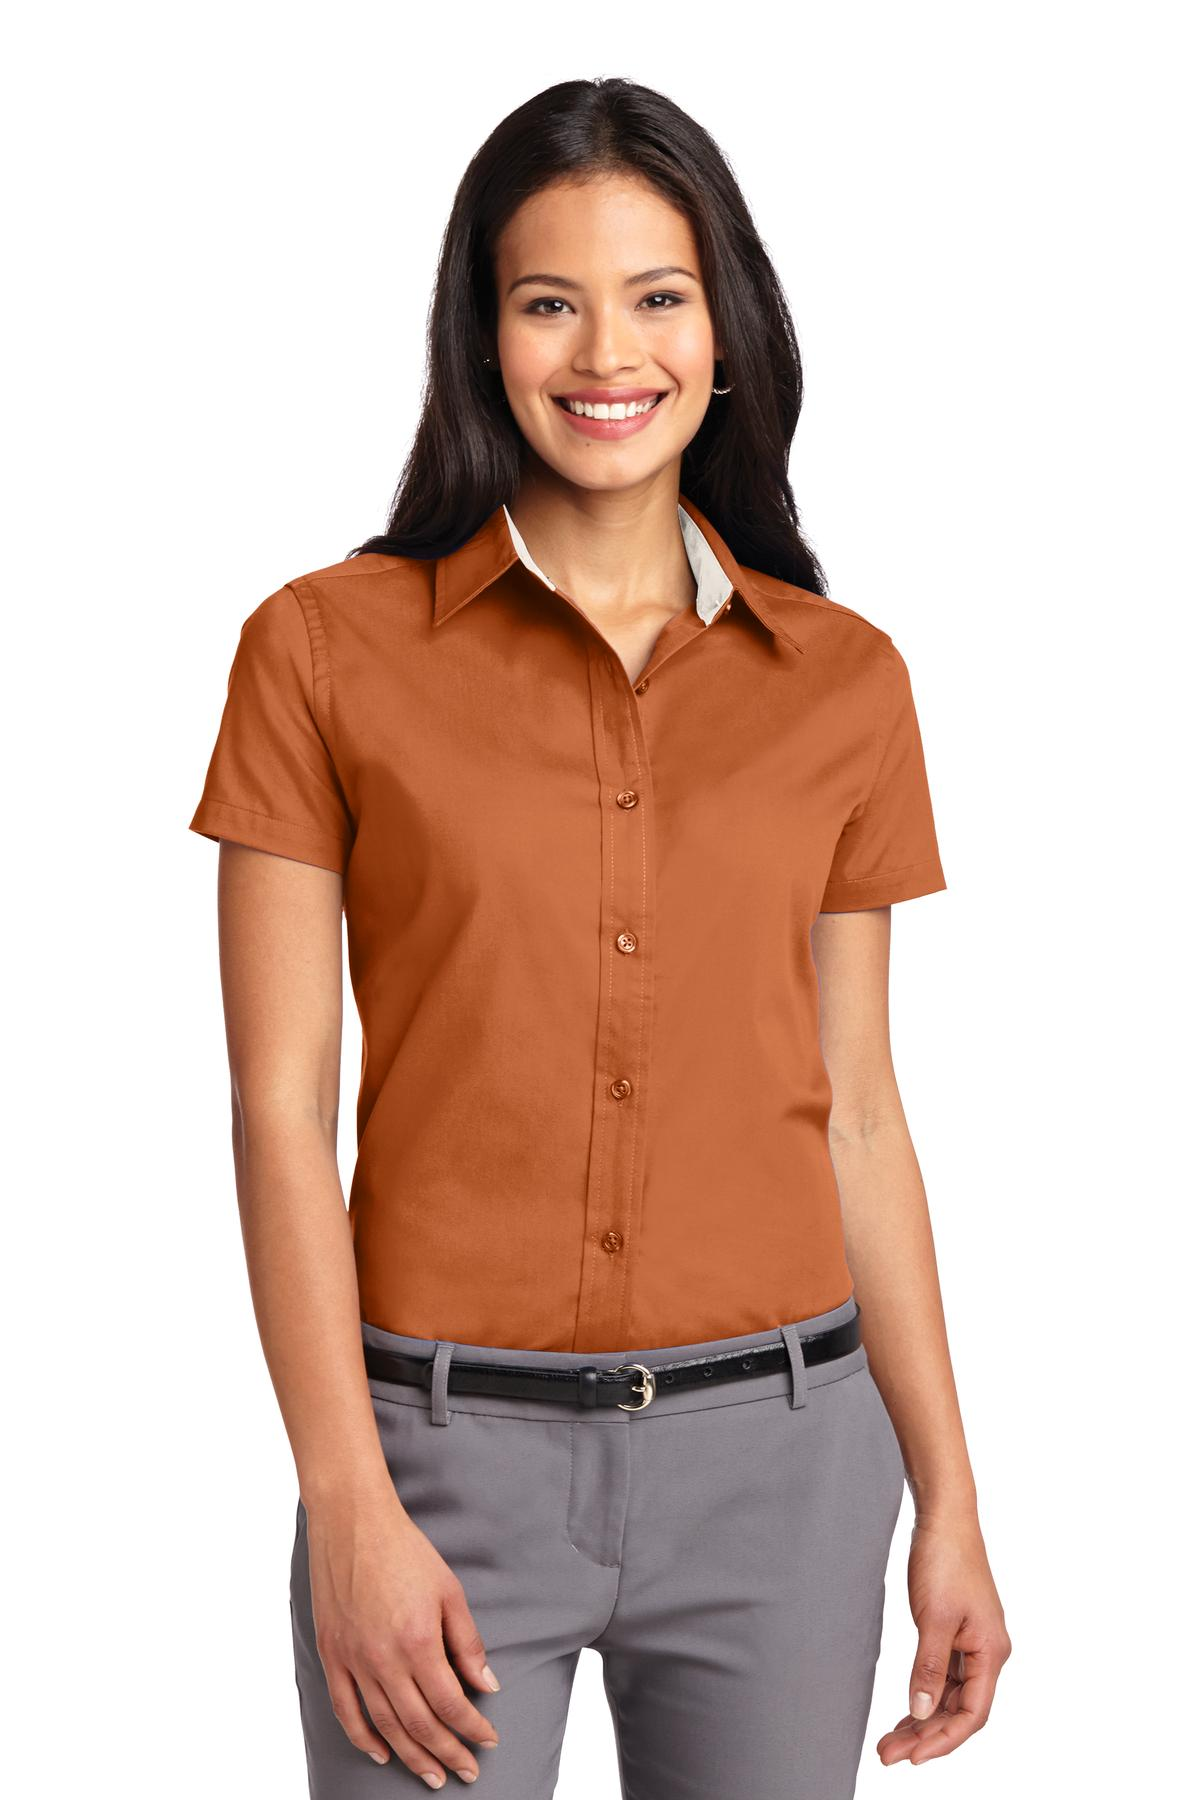 Port Authority ®  Ladies Short Sleeve Easy Care  Shirt.  L508 - Texas Orange/ Light Stone